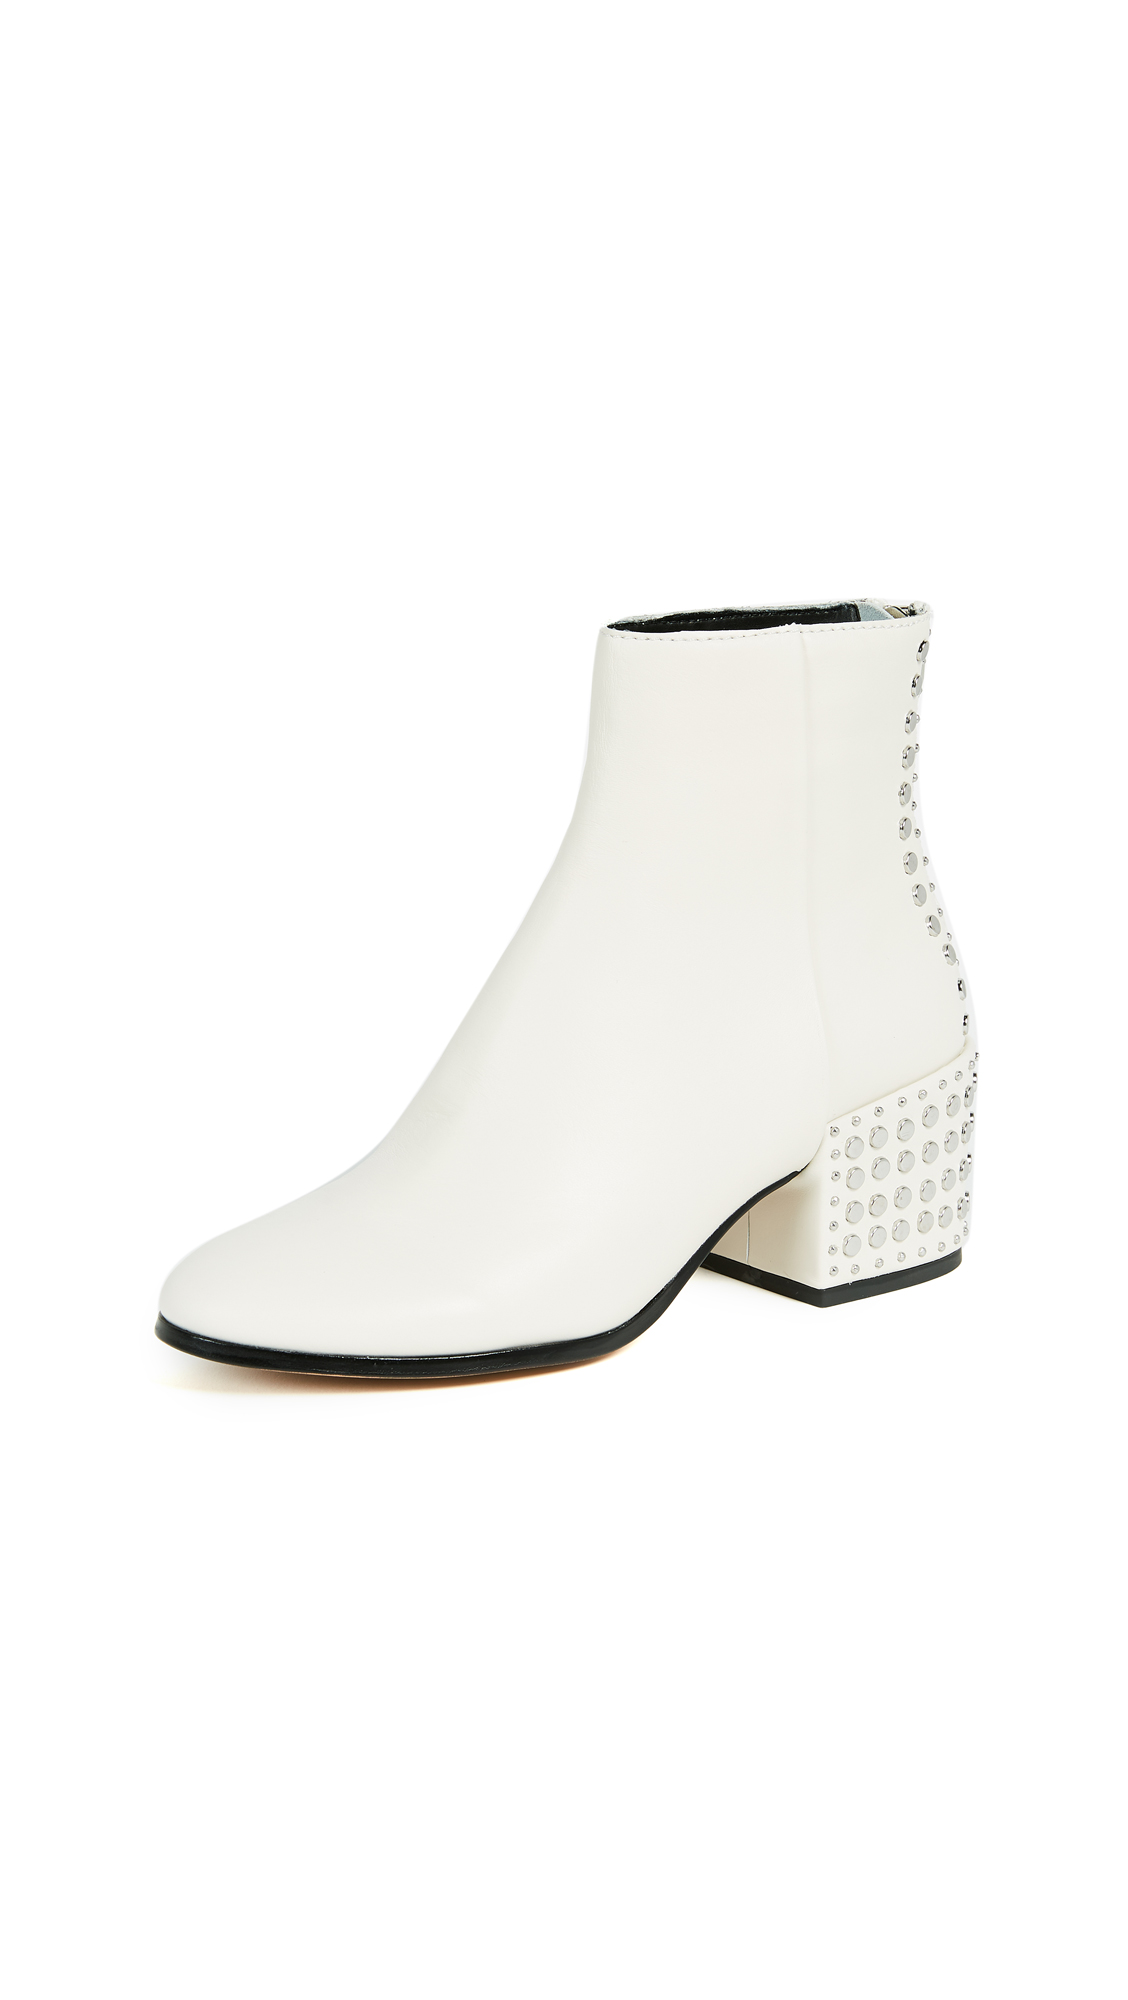 Dolce Vita Mazey Block Heel Ankle Boots - Off White